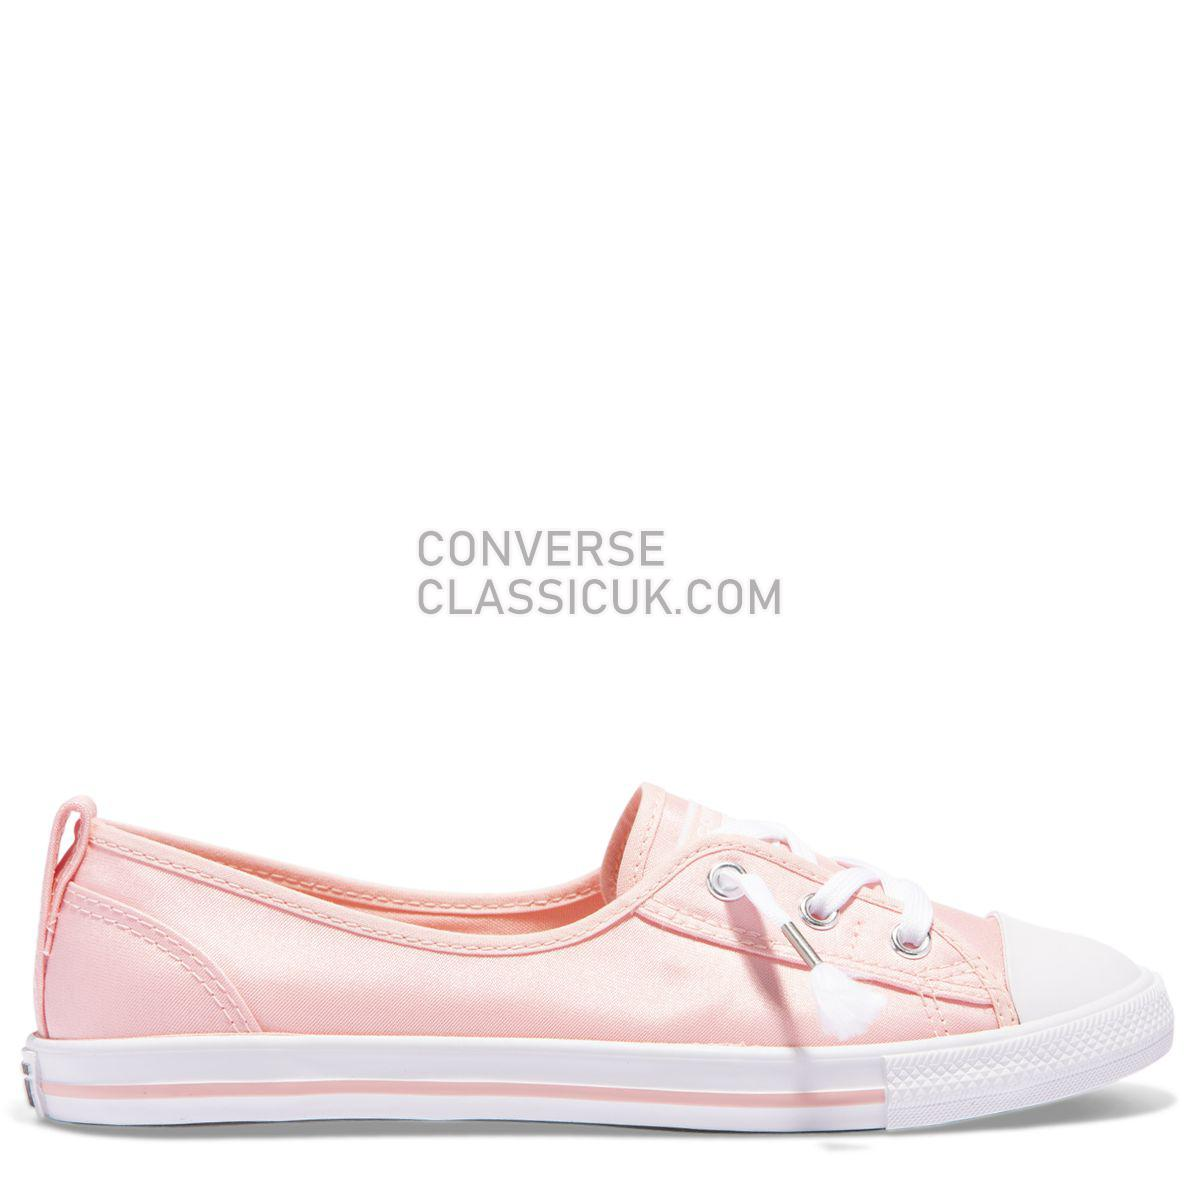 Converse Chuck Taylor All Star Ballet Lace Shimmer Pink Storm Womens 562167 Storm Pink/Storm Pink/White Shoes